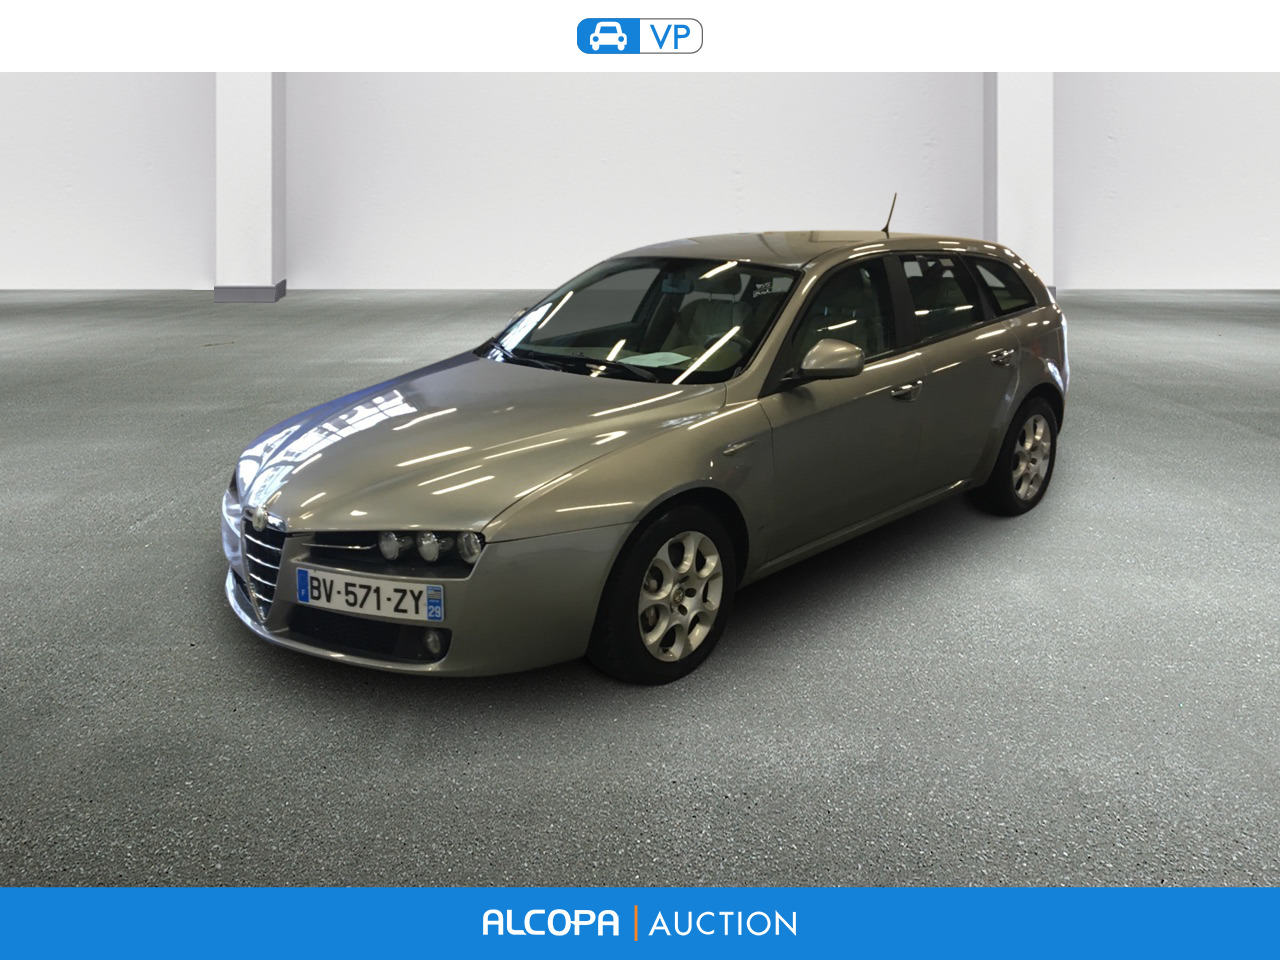 alfa romeo 159 sportwagon 02 2006 05 2013 159 sw 2 0 jtdm 170 distinctive alcopa auction. Black Bedroom Furniture Sets. Home Design Ideas